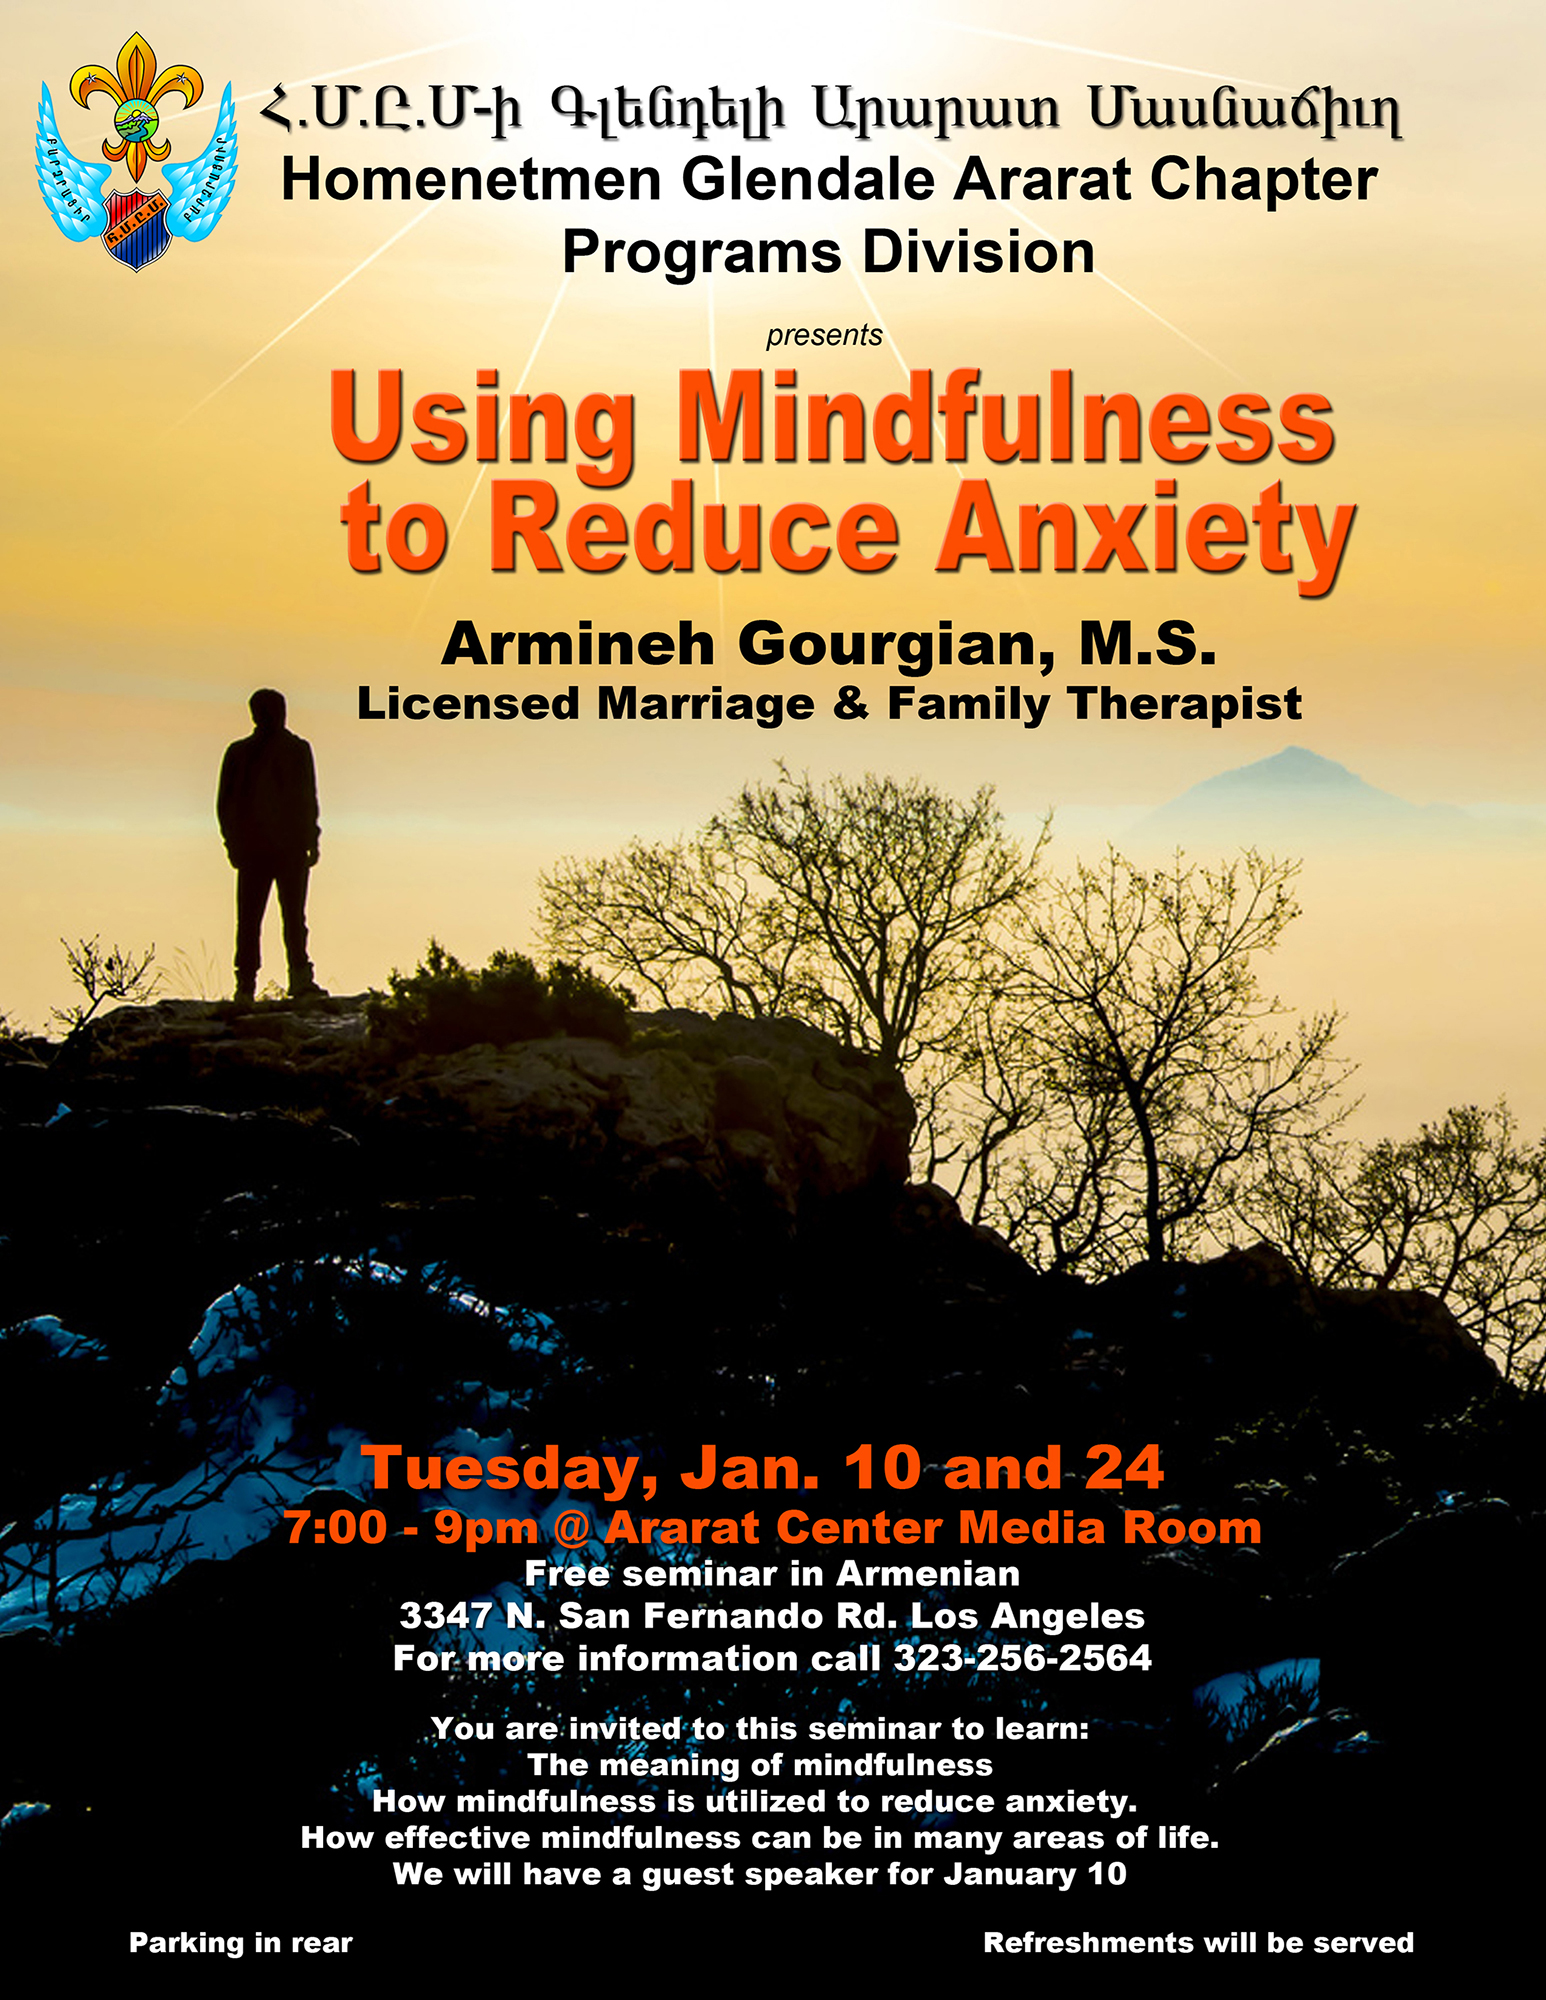 Using Mindfulness to Reduce Anxiety